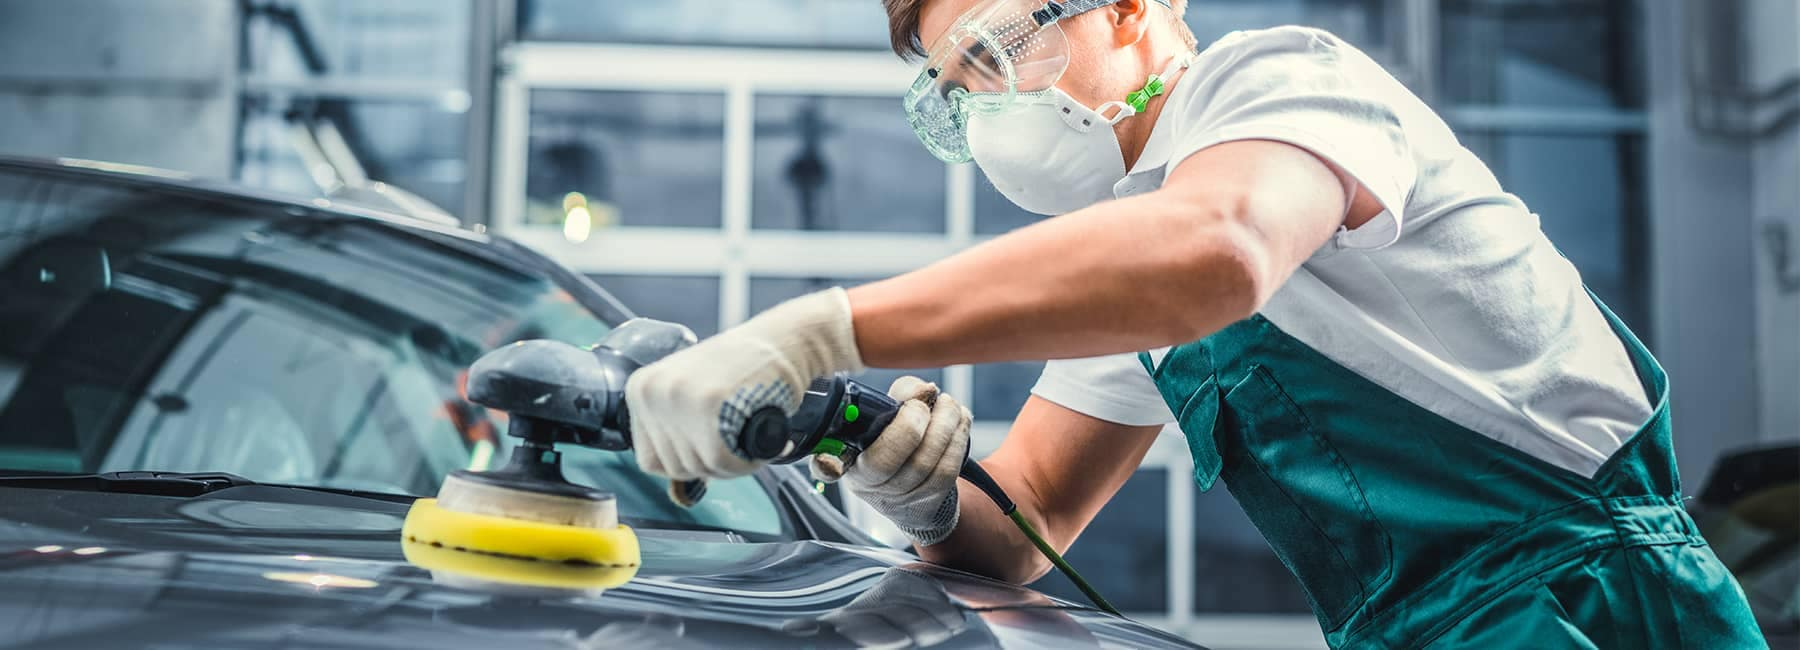 Mechanic buffing the paint of a car at an auto body shop